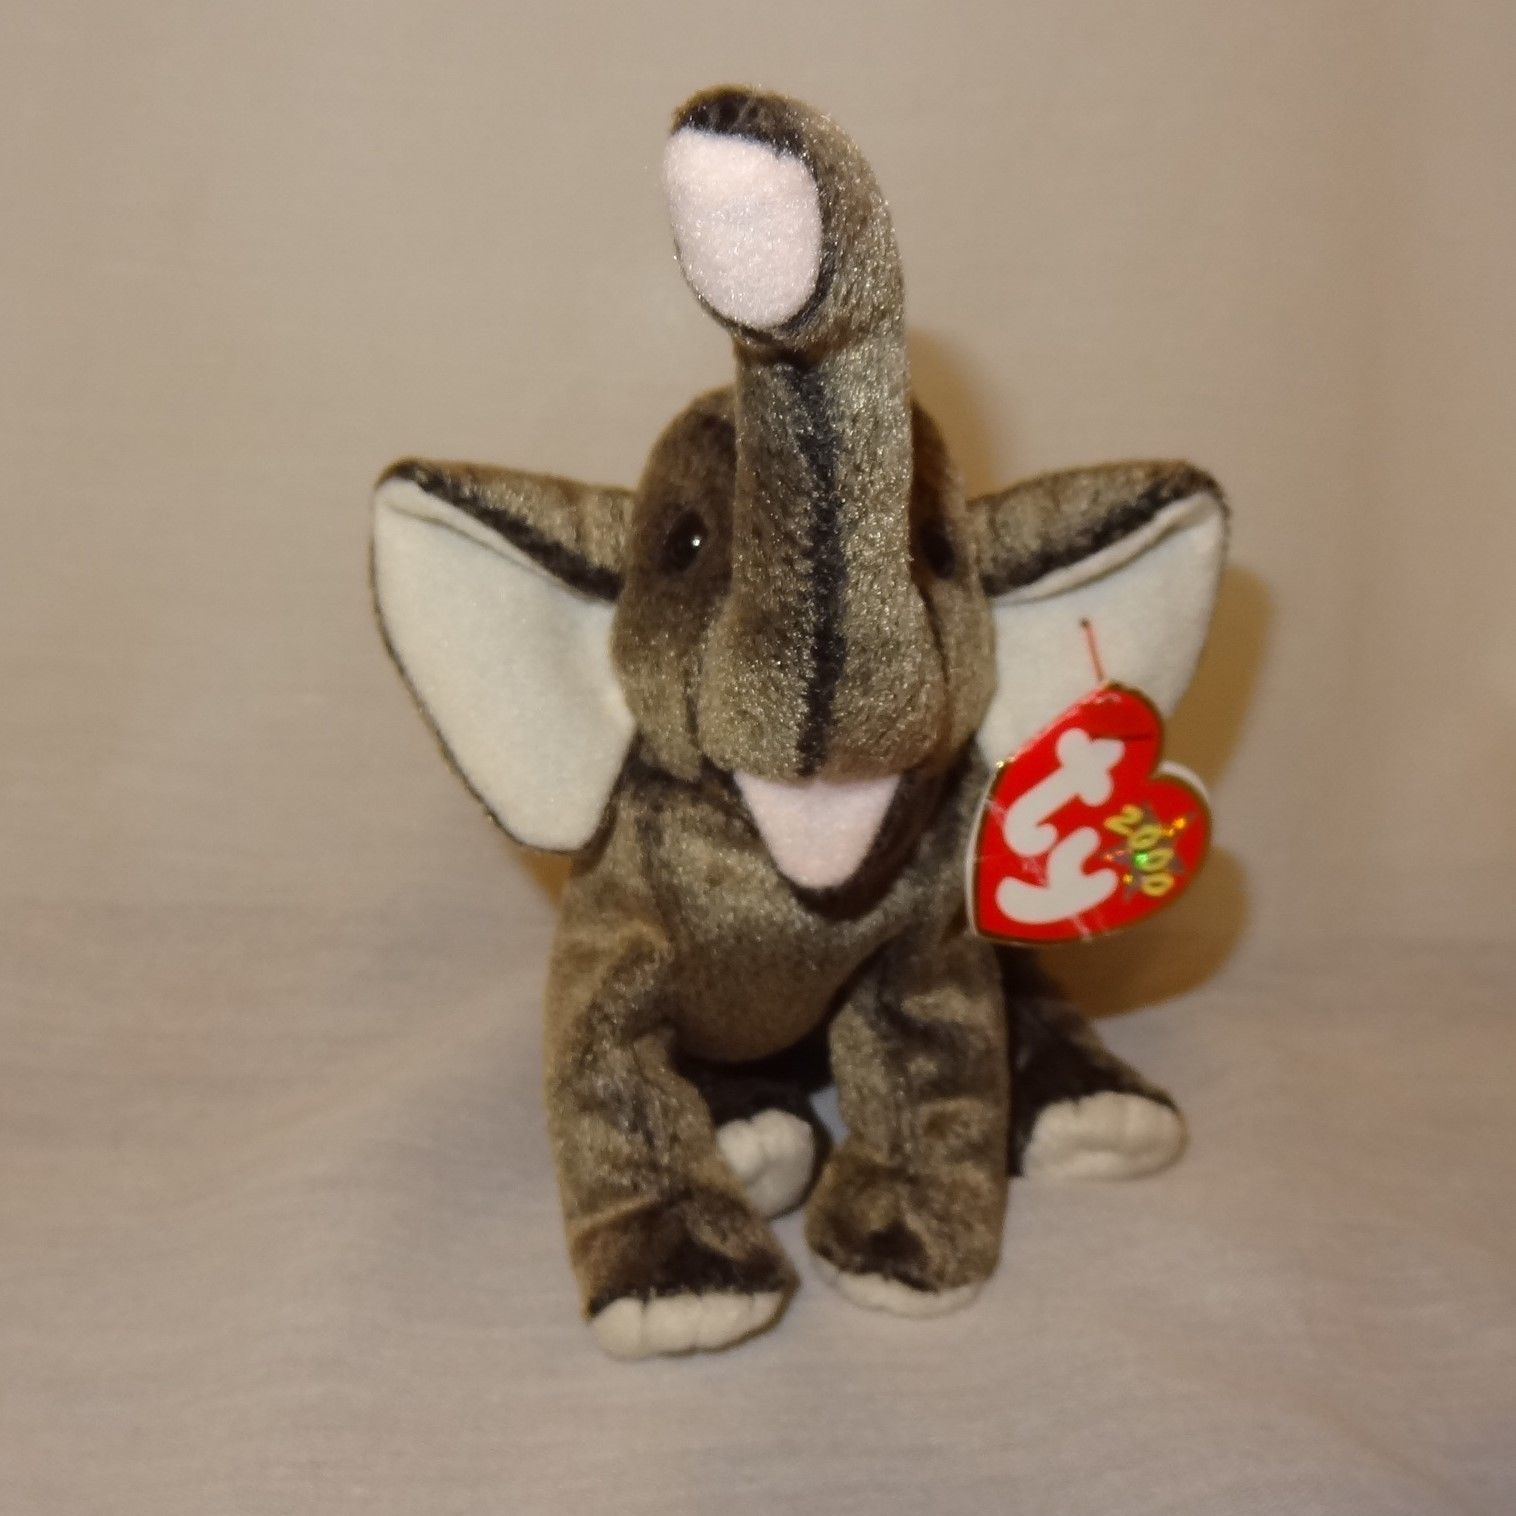 "Trumpet Elephant Ty Beanie Babies Collection Plush Stuffed Animal 5"" 2000"